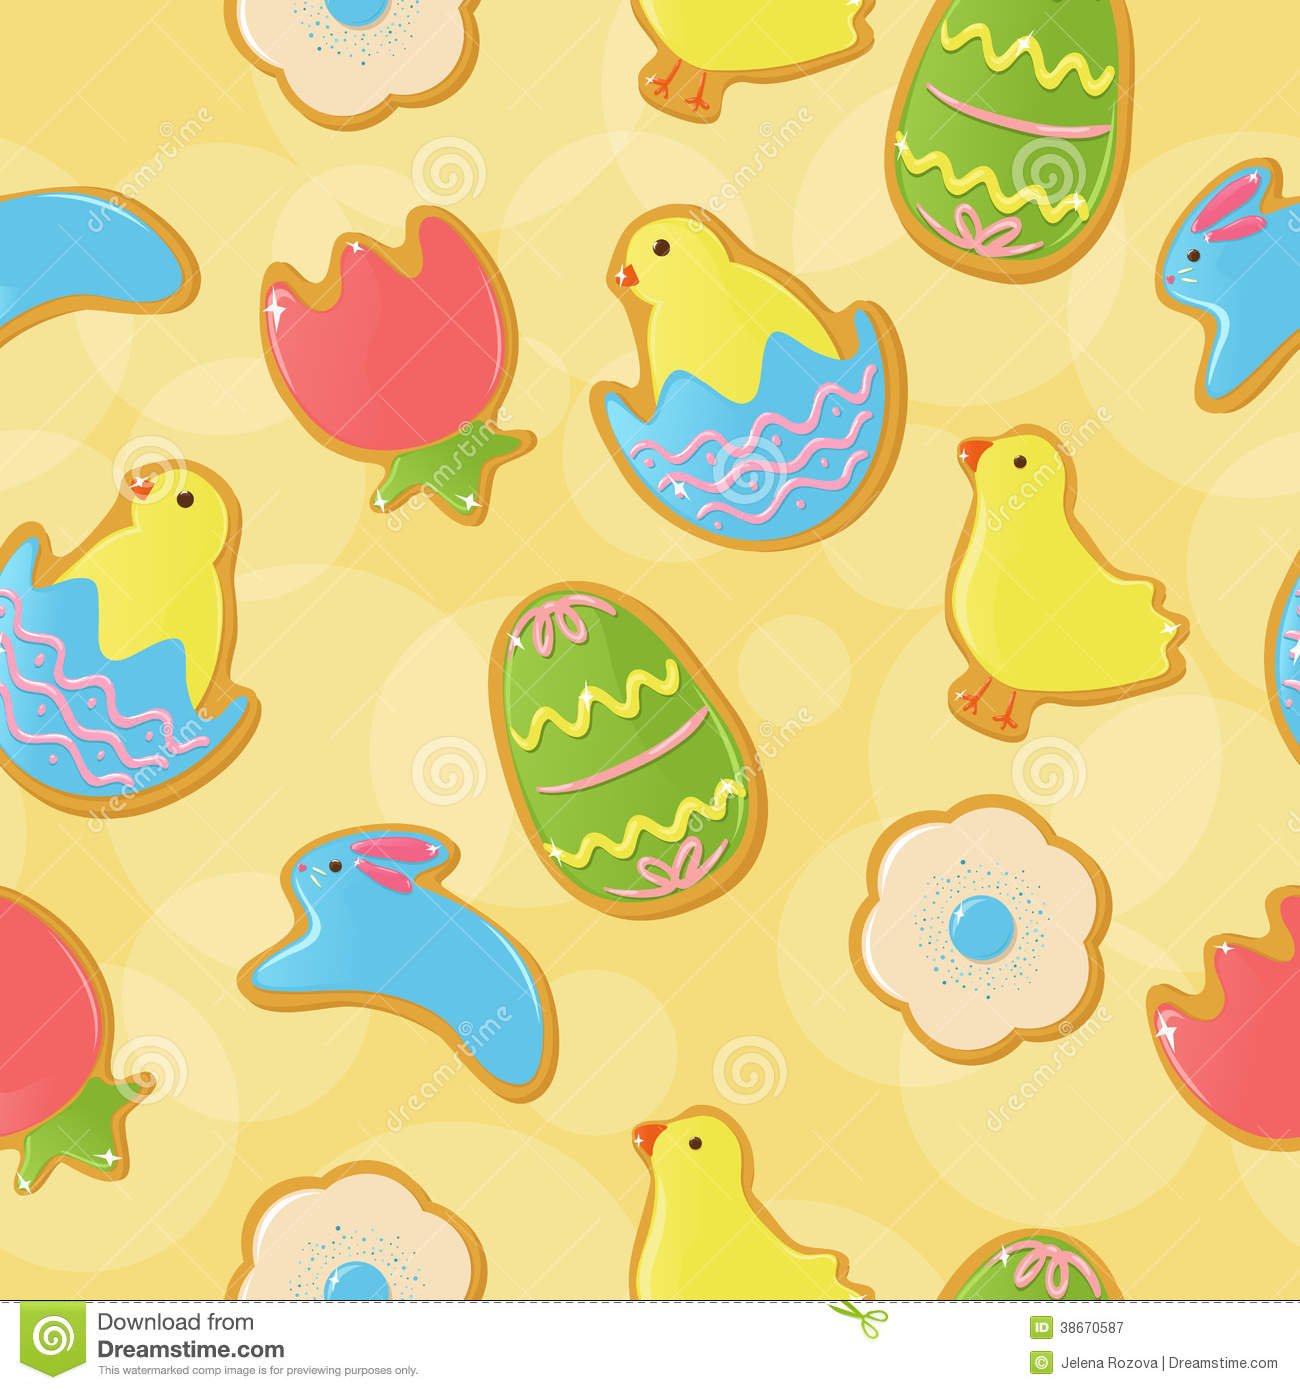 Cookie Monster Cute Wallpaper Seamless Easter Cookie Background Royalty Free Stock